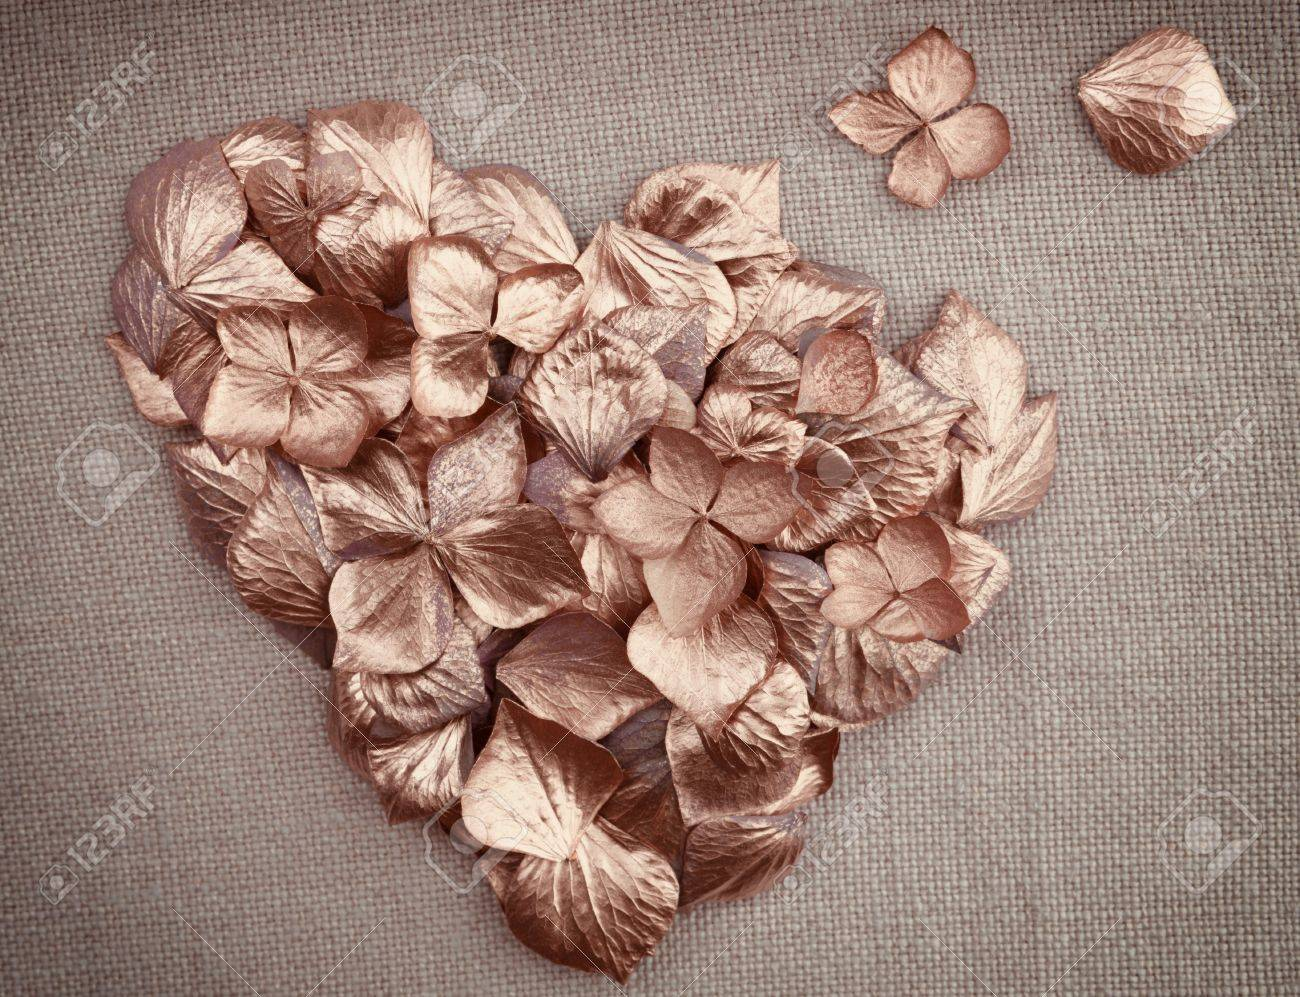 17679895-Golden-vintage-hydrangea-flower-petals-in-the-shape-of-a-heart-on-fabric-background-Stock-Photo